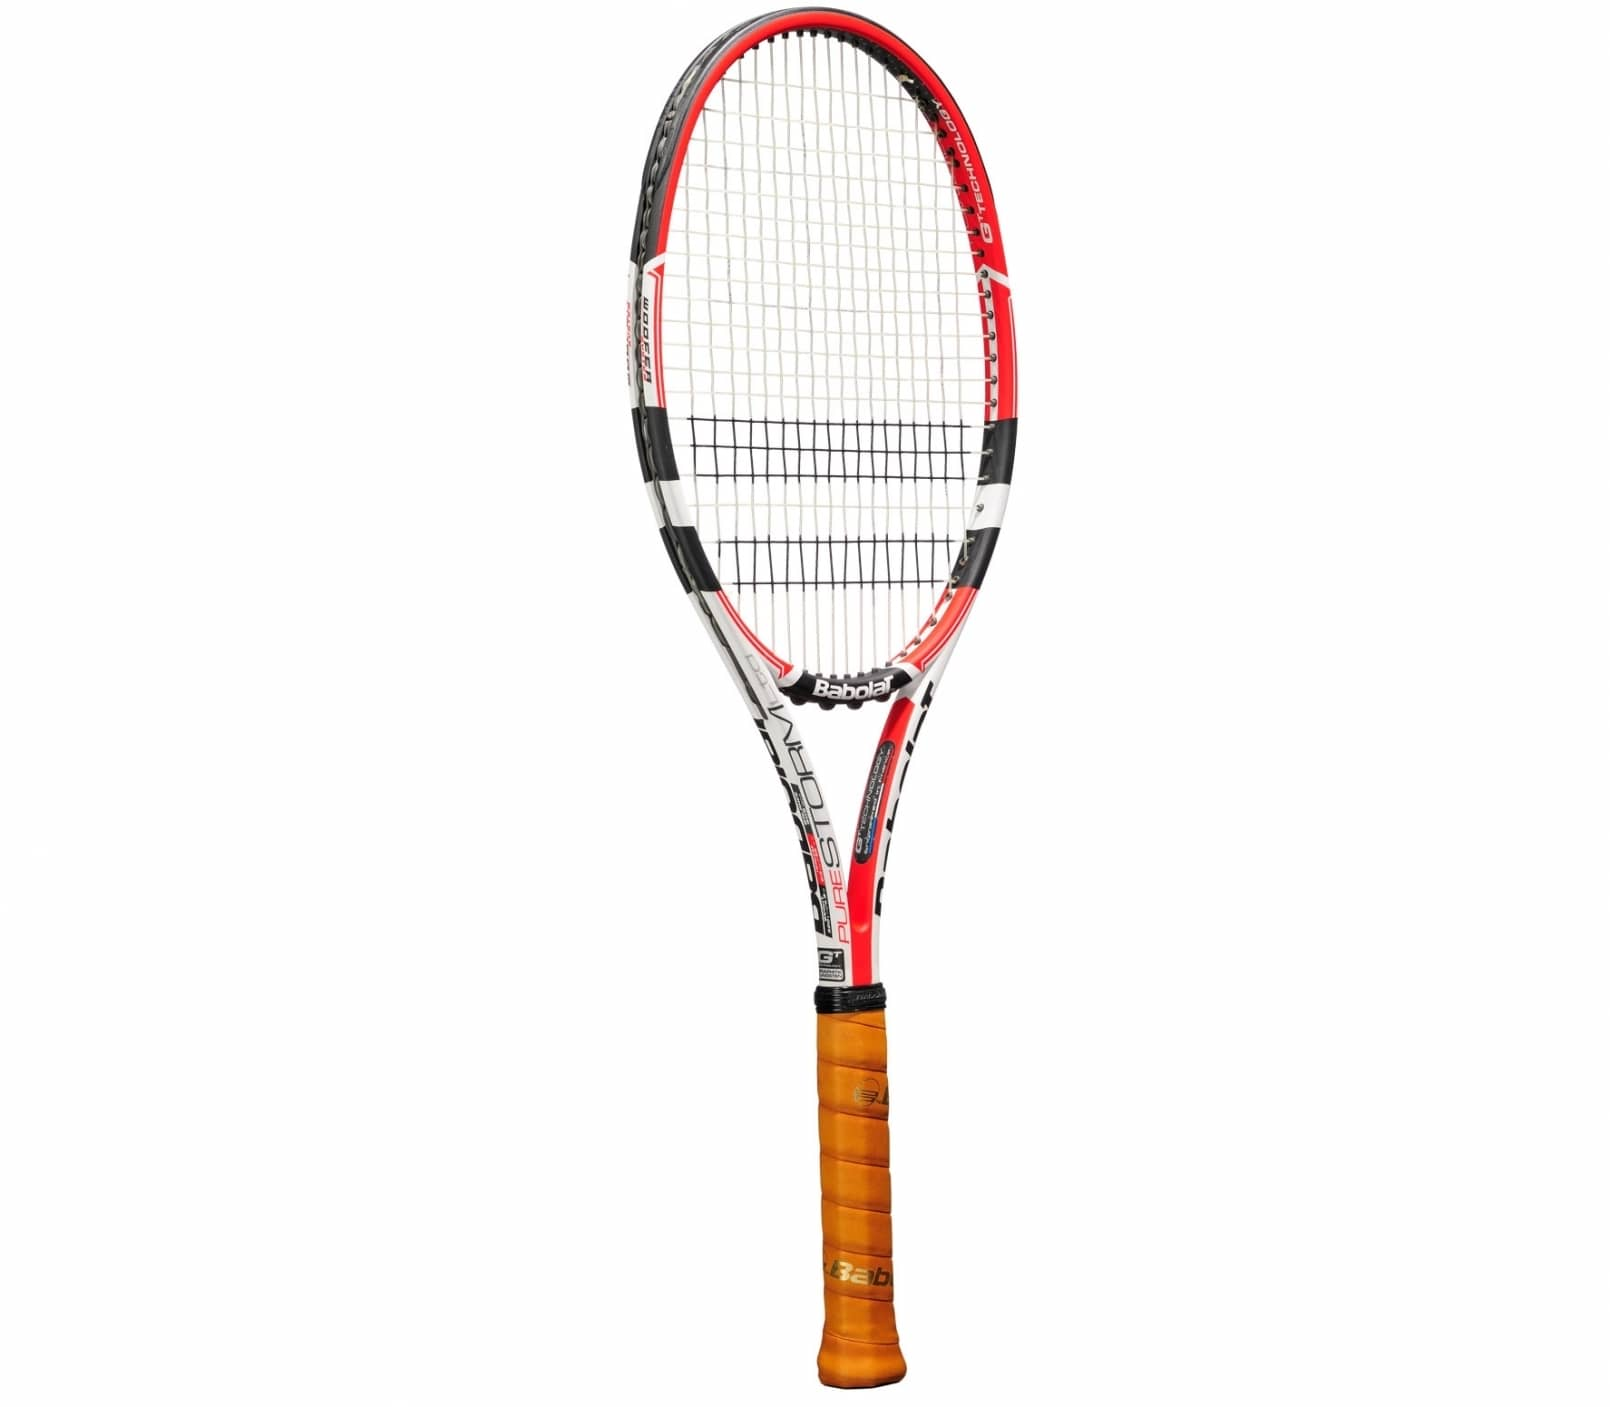 babolat pure storm_Babolat - Pure Storm Ltd. GT - buy it at the Keller Sports online shop